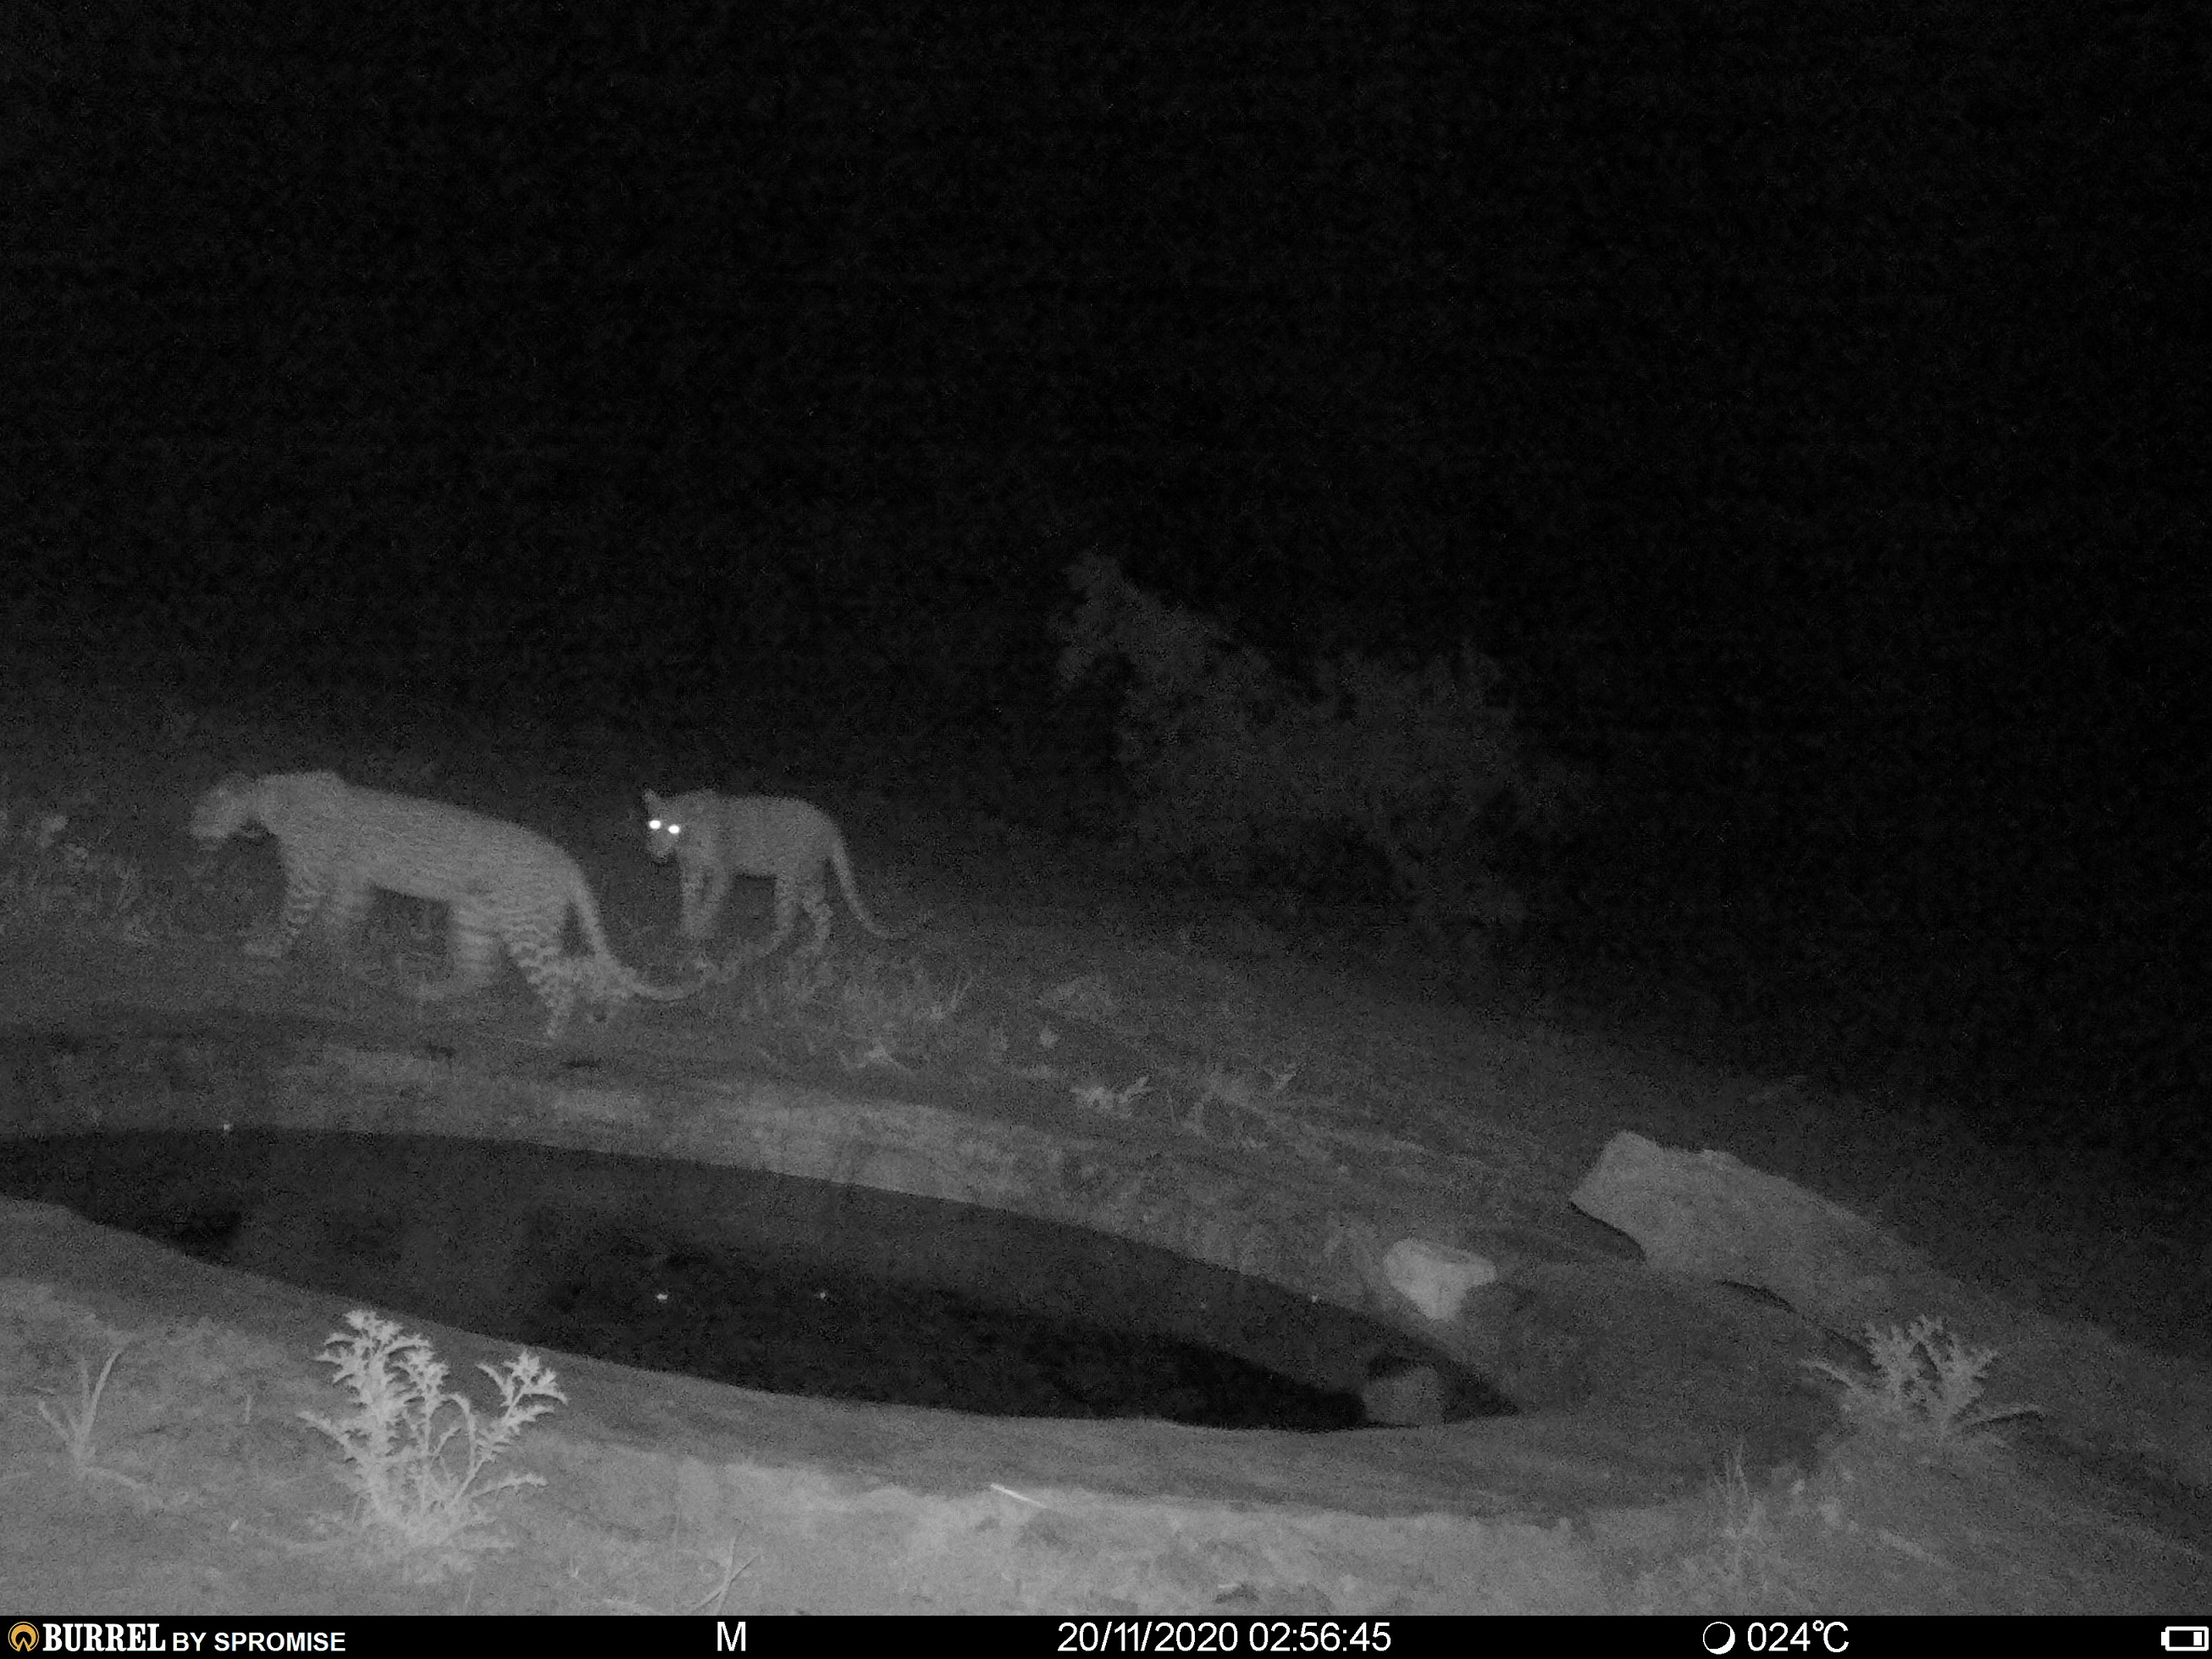 Two leopards captured on a camera trap in Phundundu wildlife area